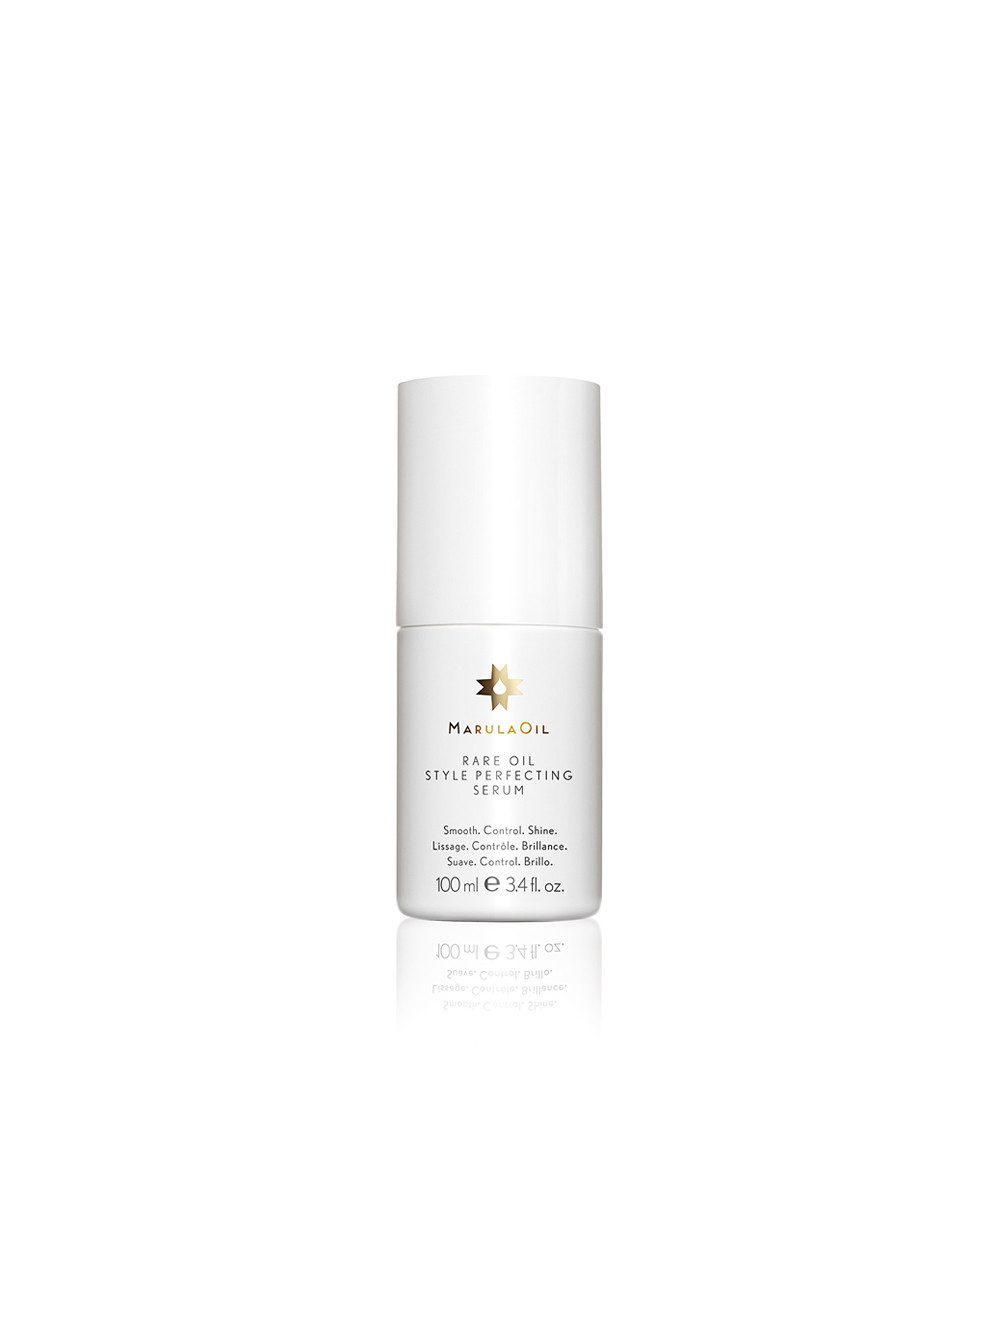 Marula Oil Rare Oil Style Perfecting Serum